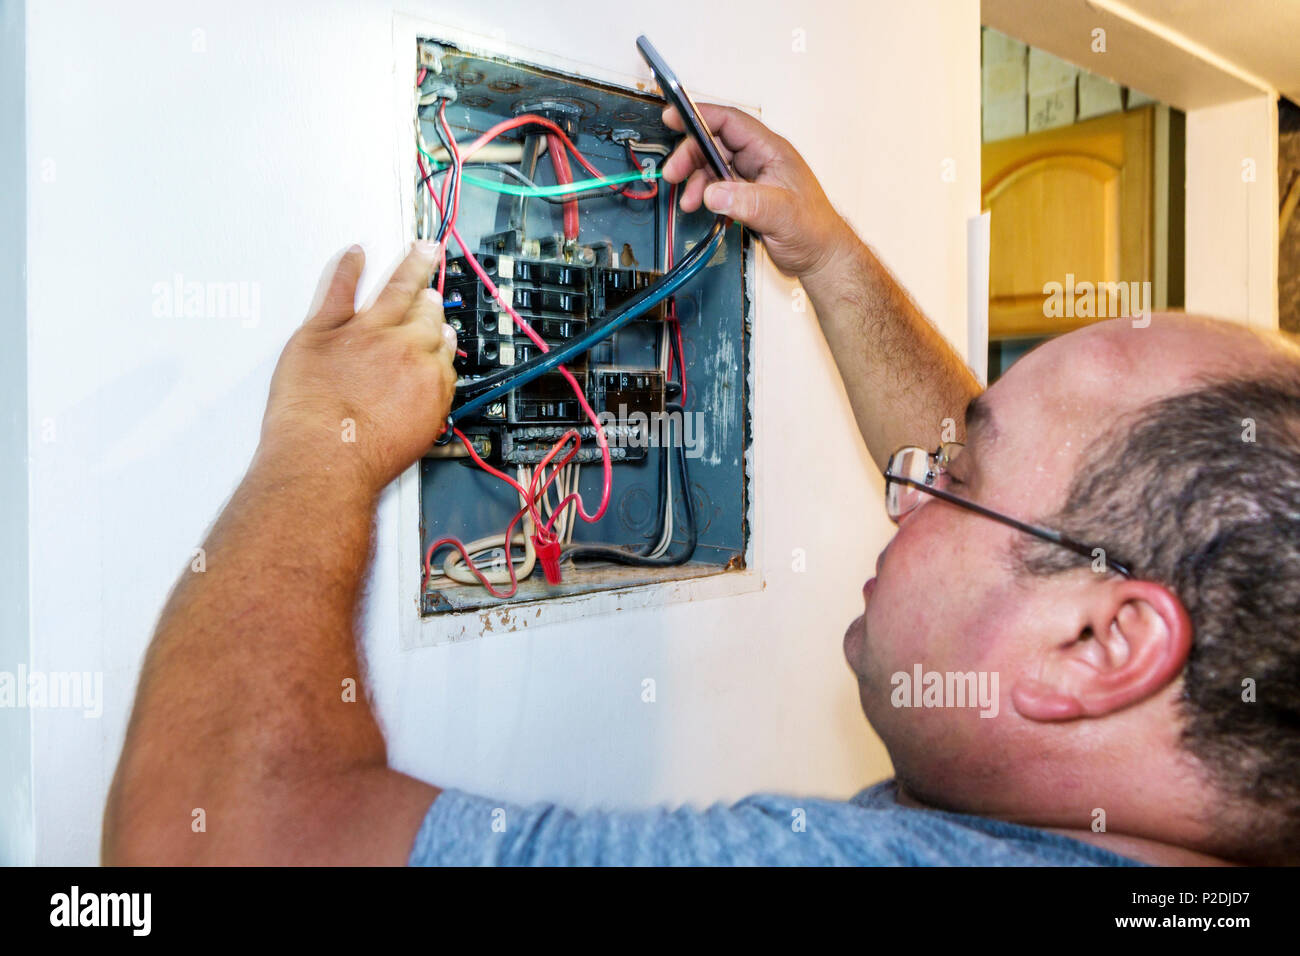 Electrical Panel Circuit Breakers Stock Photos Home Wiring Breaker Box Florida Miami Beach Hispanic Man Electrician Working Wires Job Repair